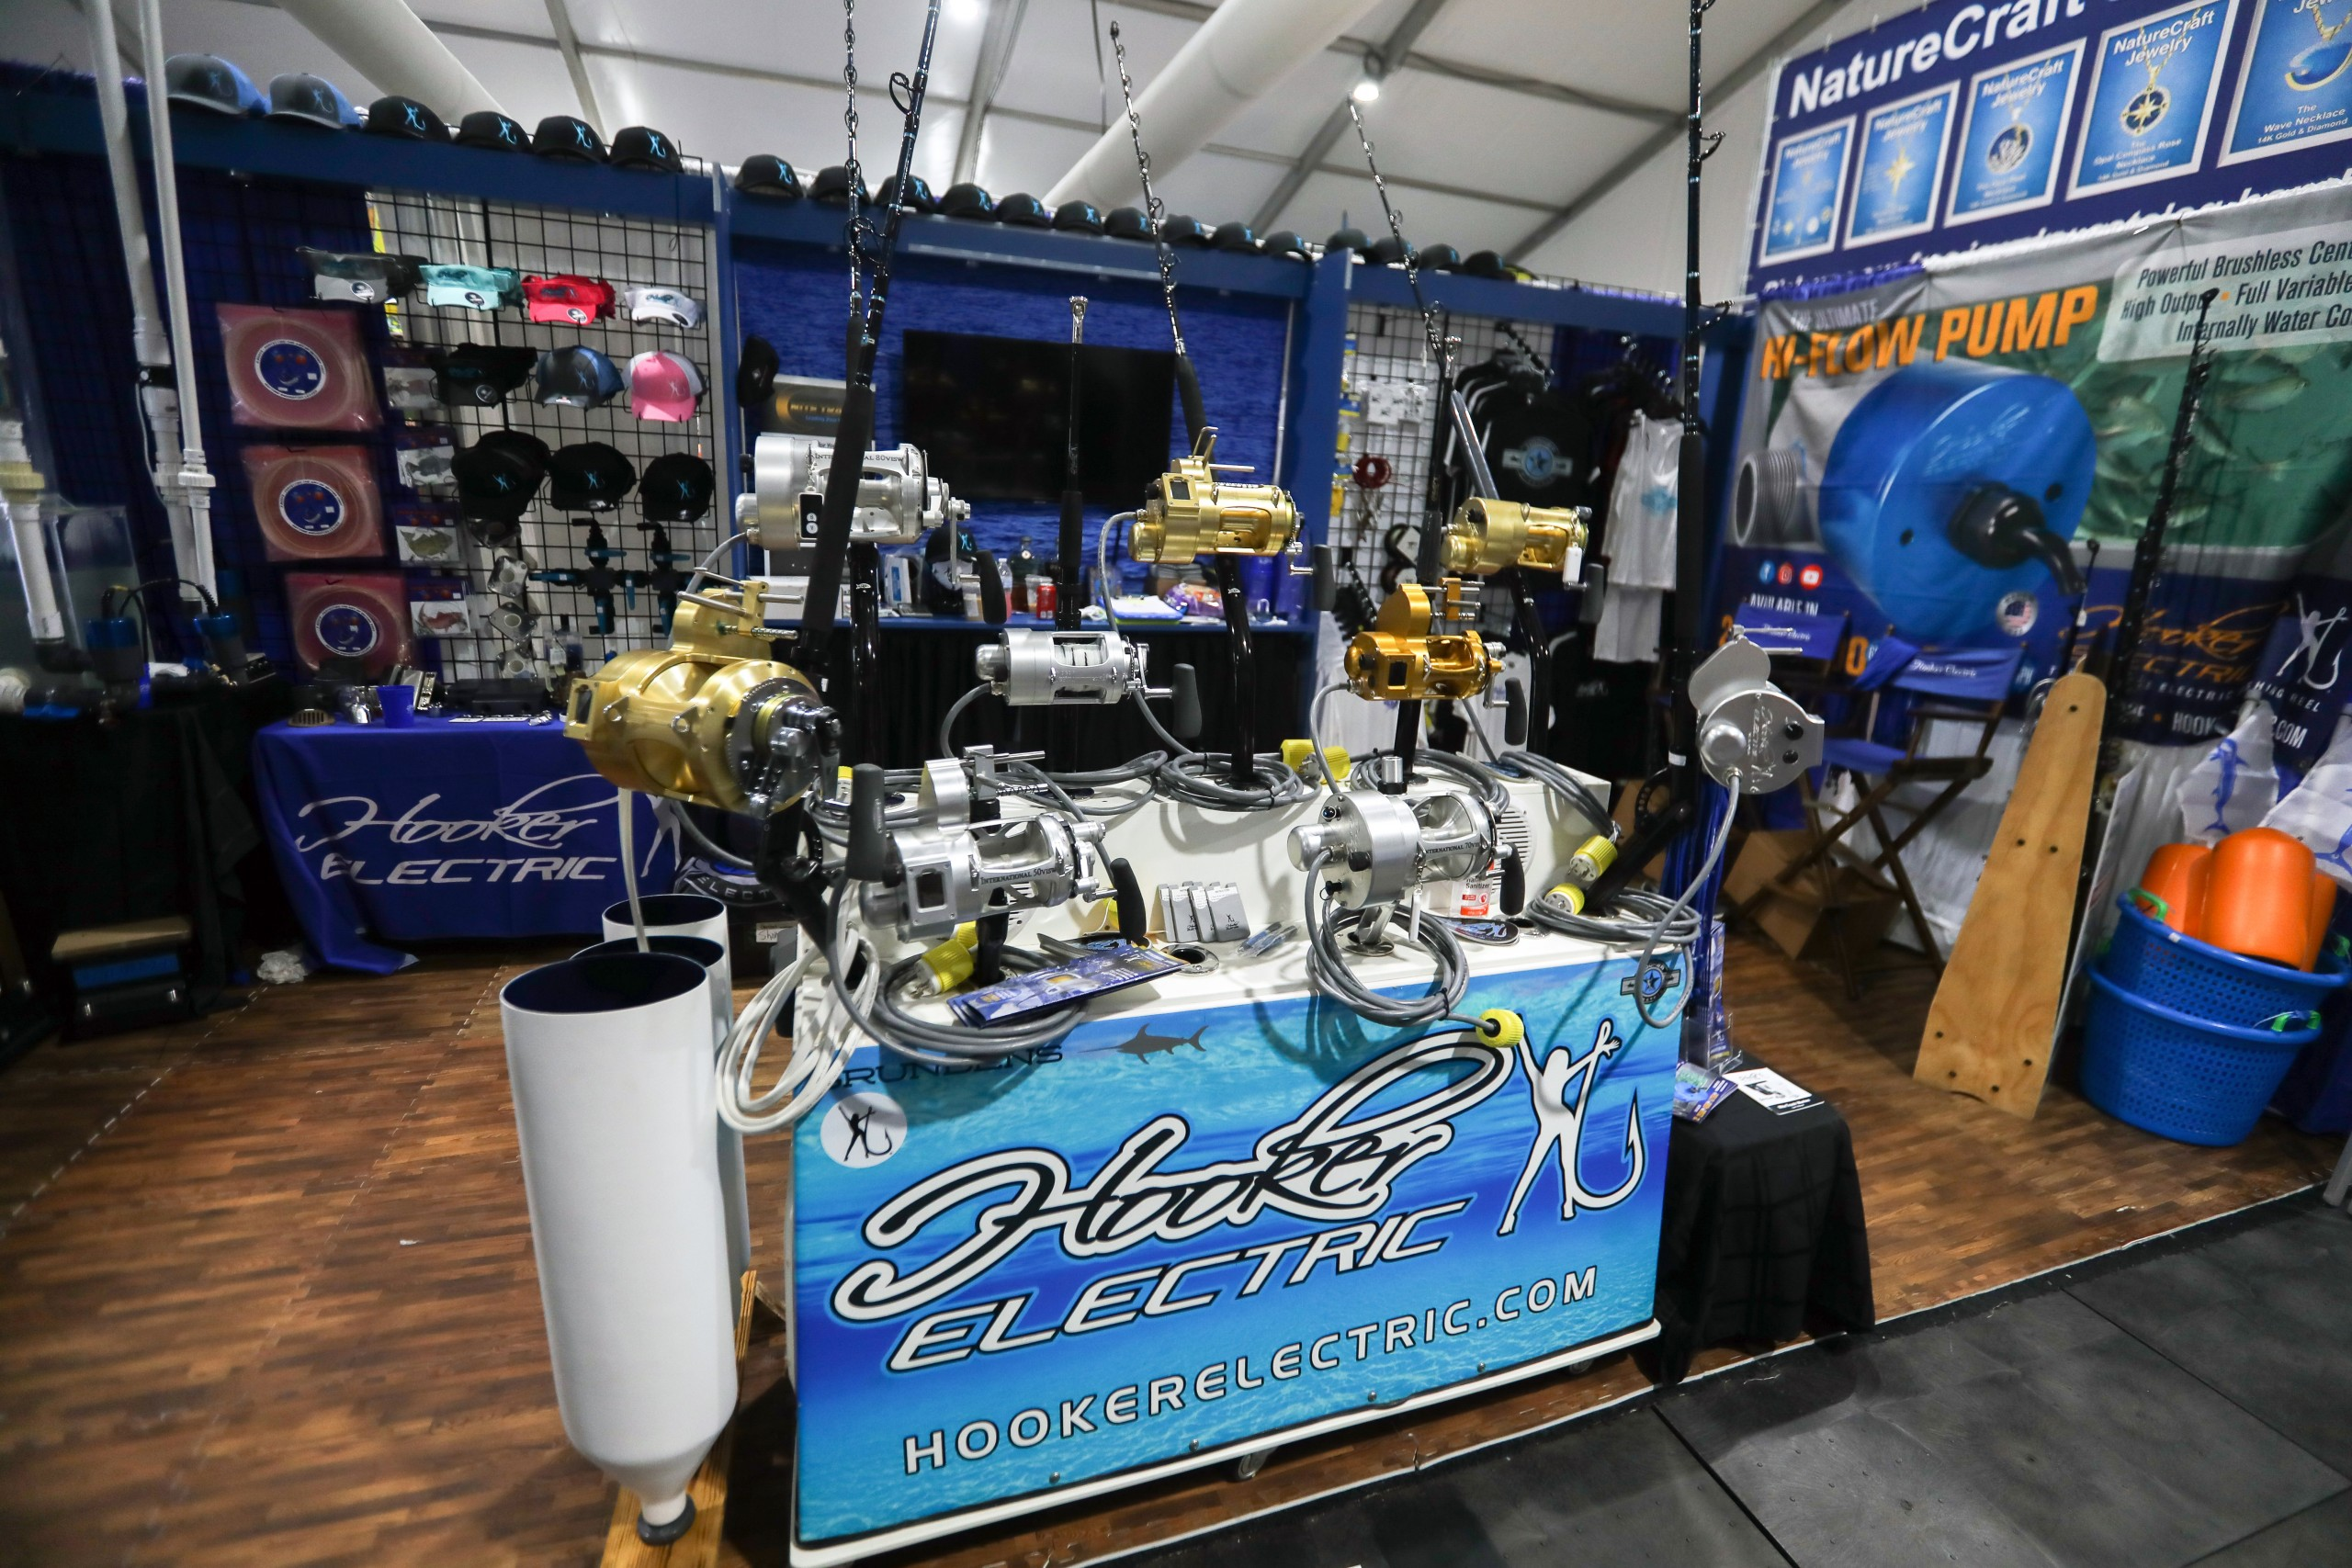 hooker electric reels and rods on display at the fort lauderdale boat show